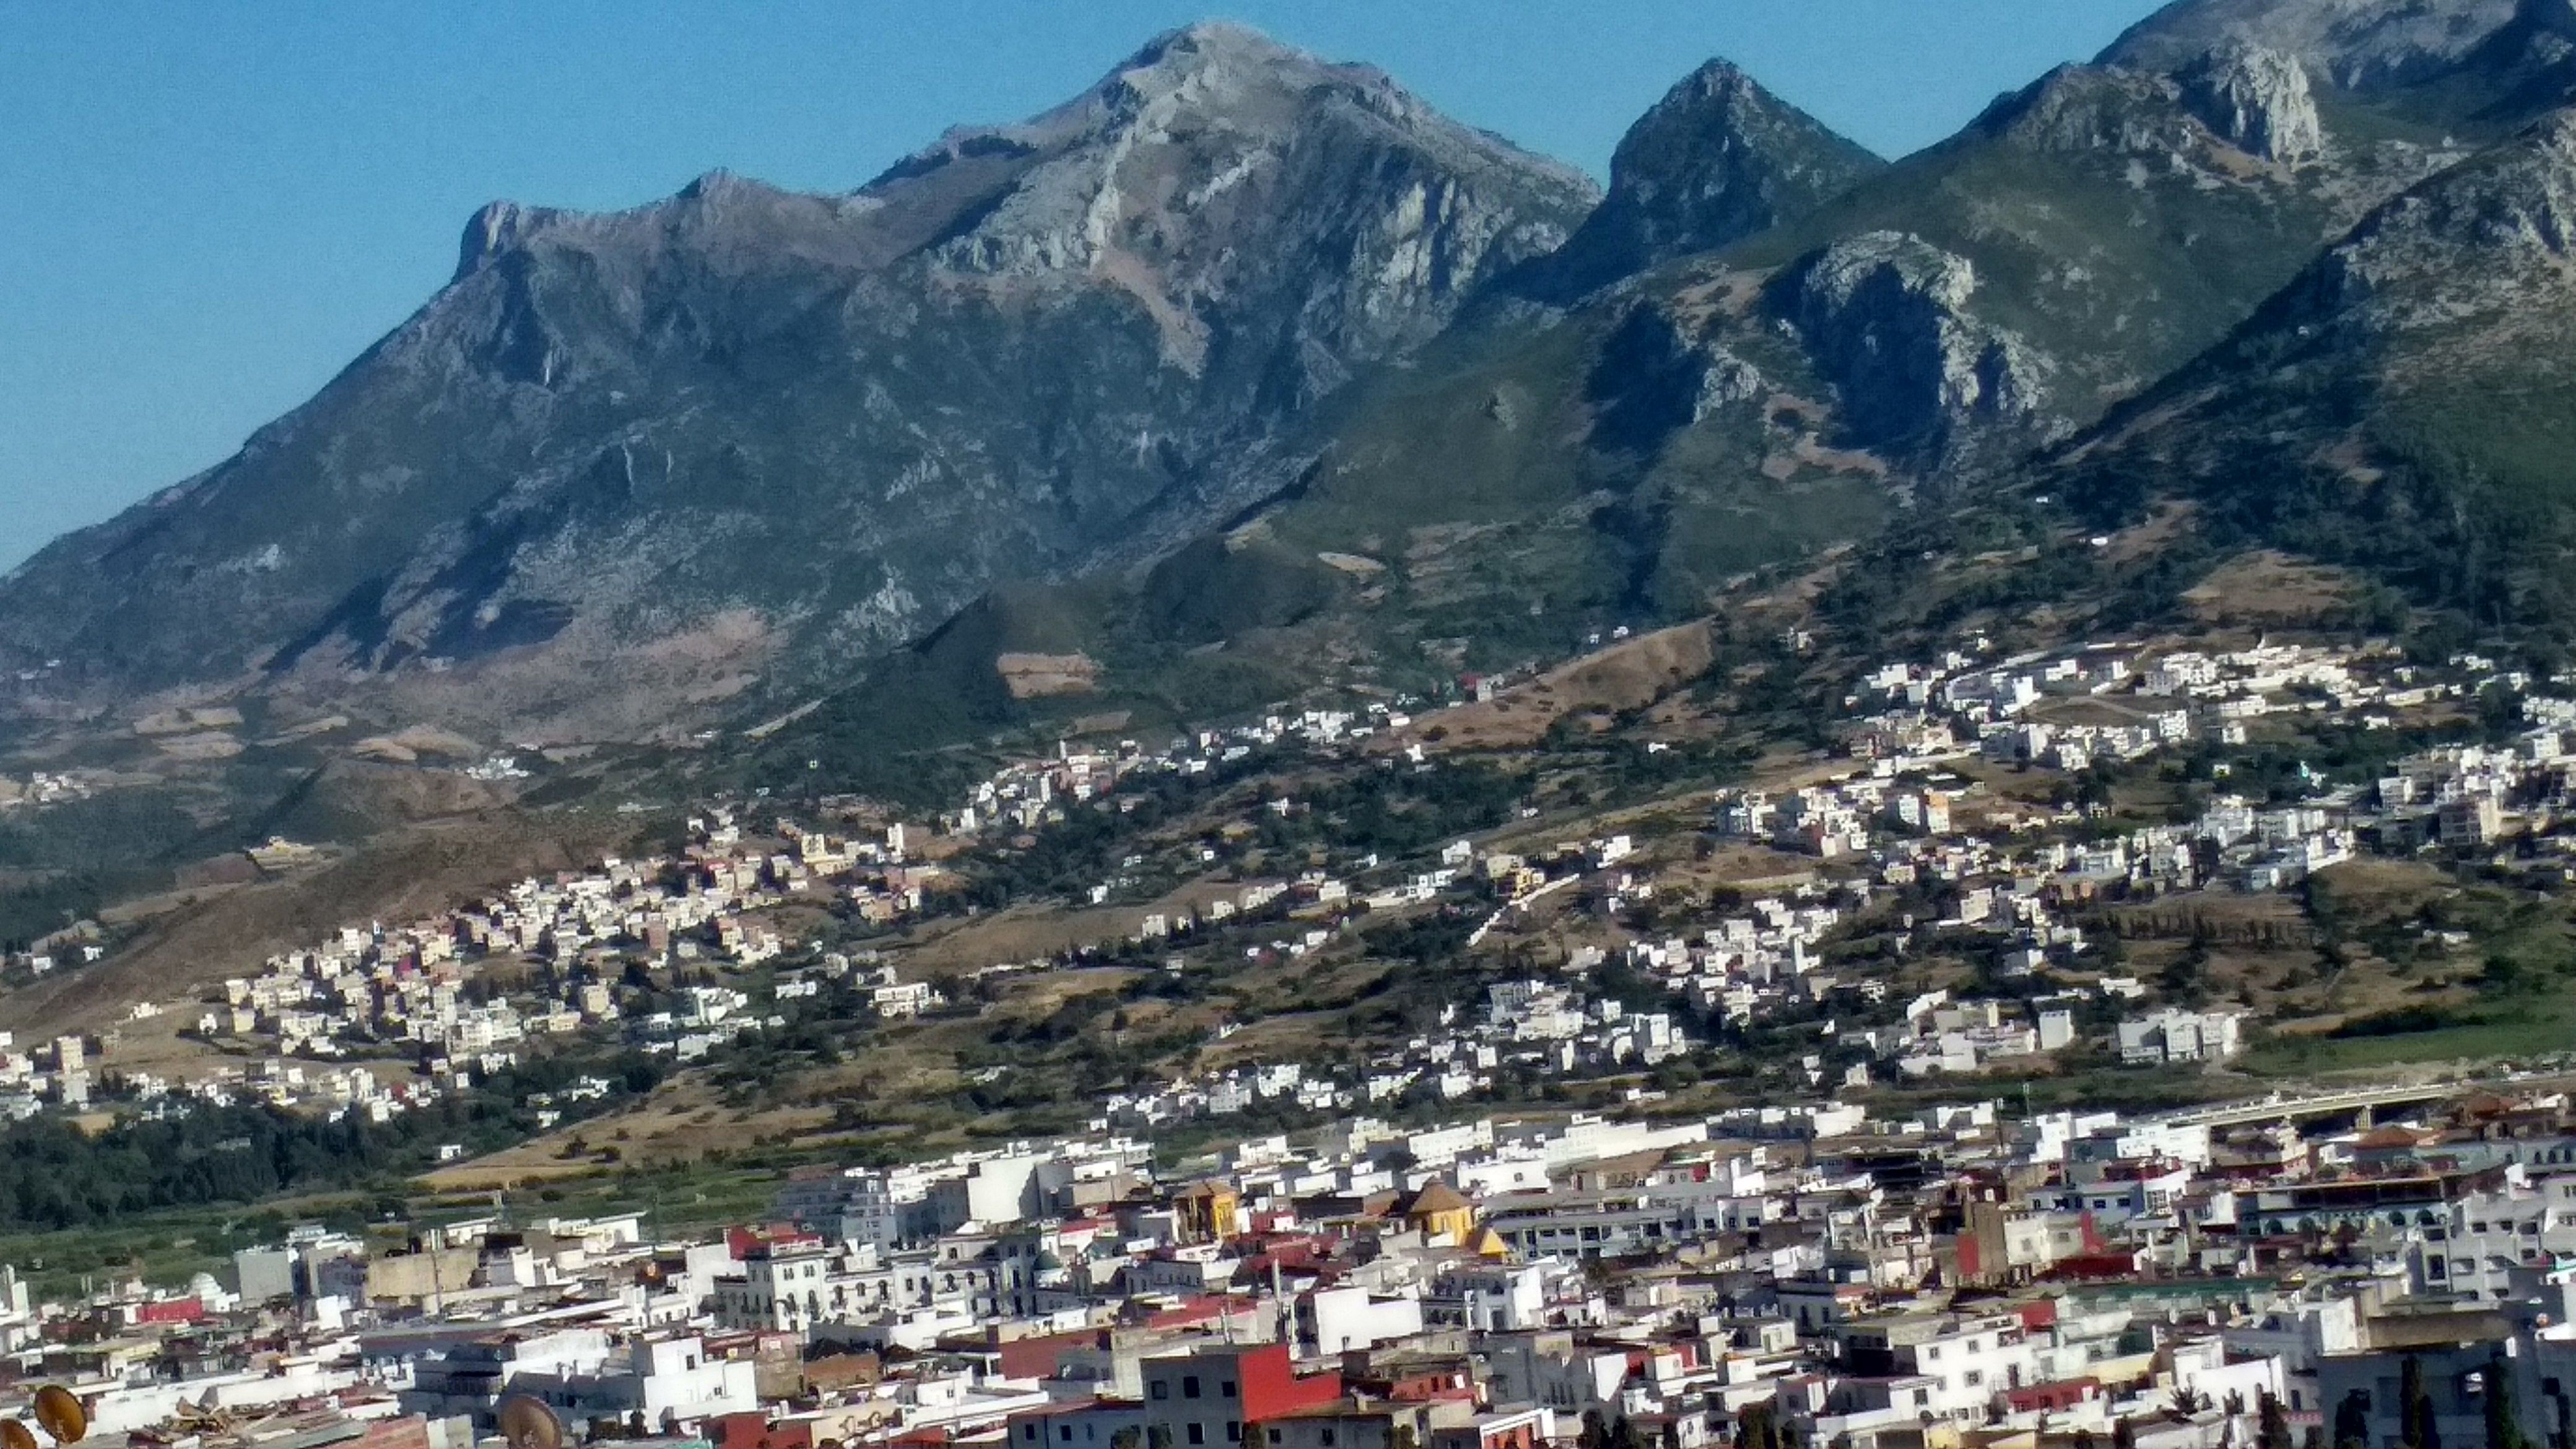 A View On Ghorghiz Mountain From Dersa Mountain Tetouan صورة لجبل غرغيز من جبل درسة تطوان Natural Landmarks Pictures Landmarks